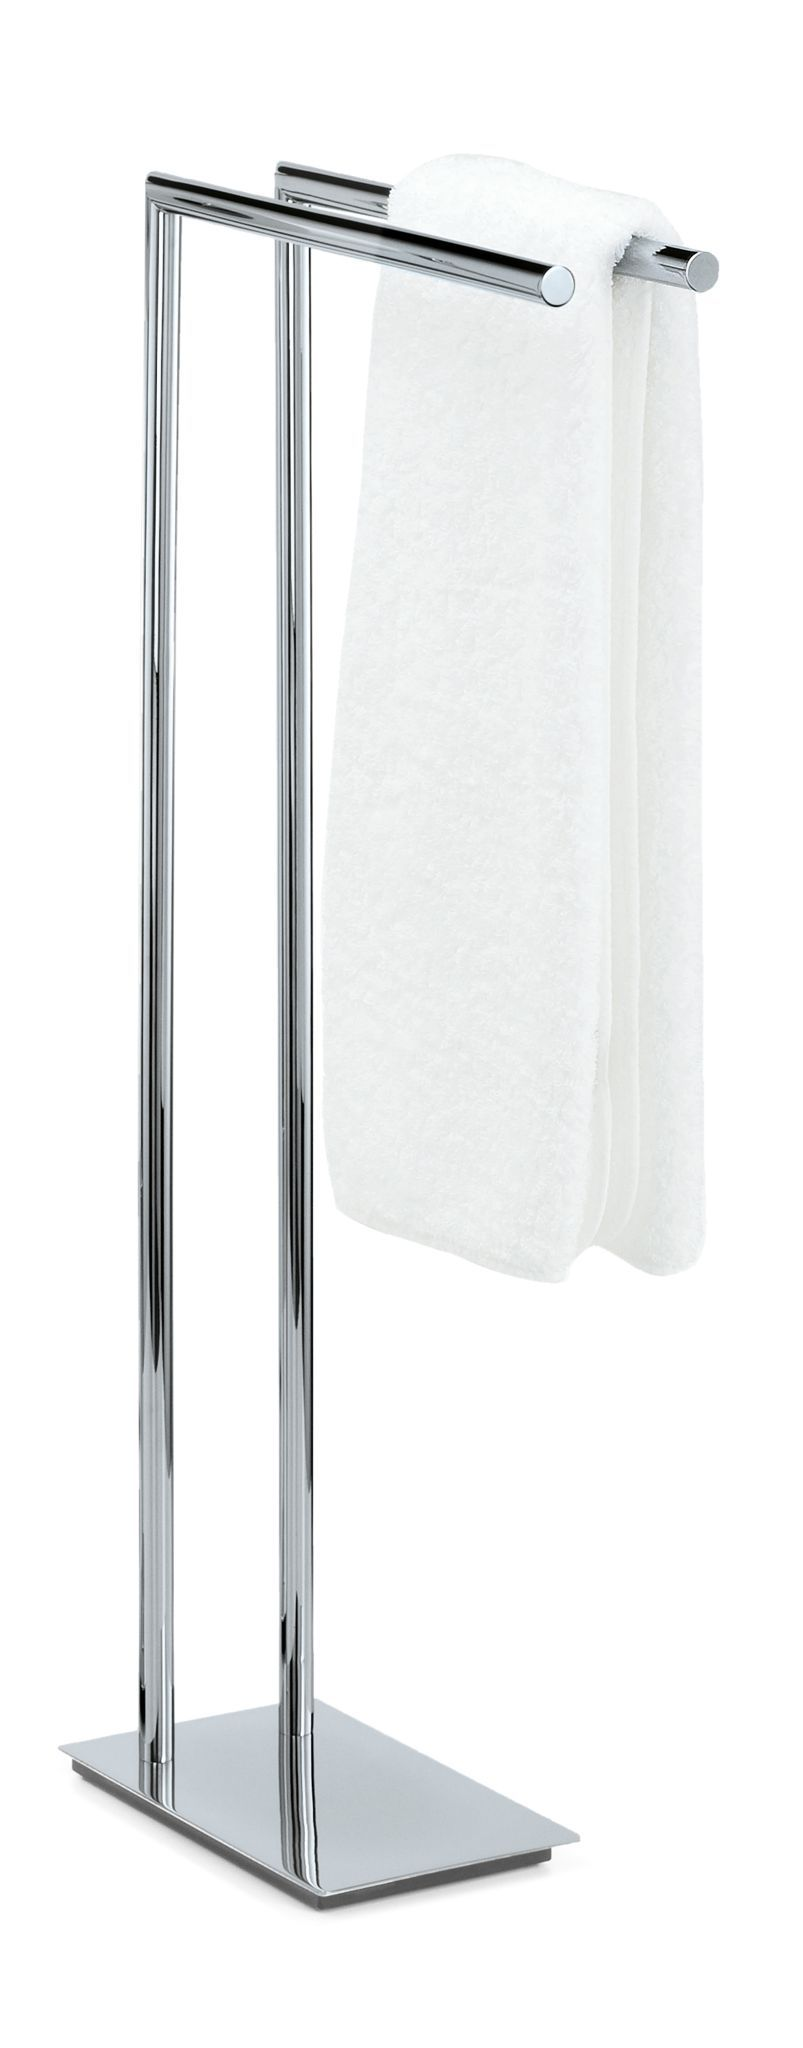 dwba pin stand bar towel tier holder chrome double rack standing